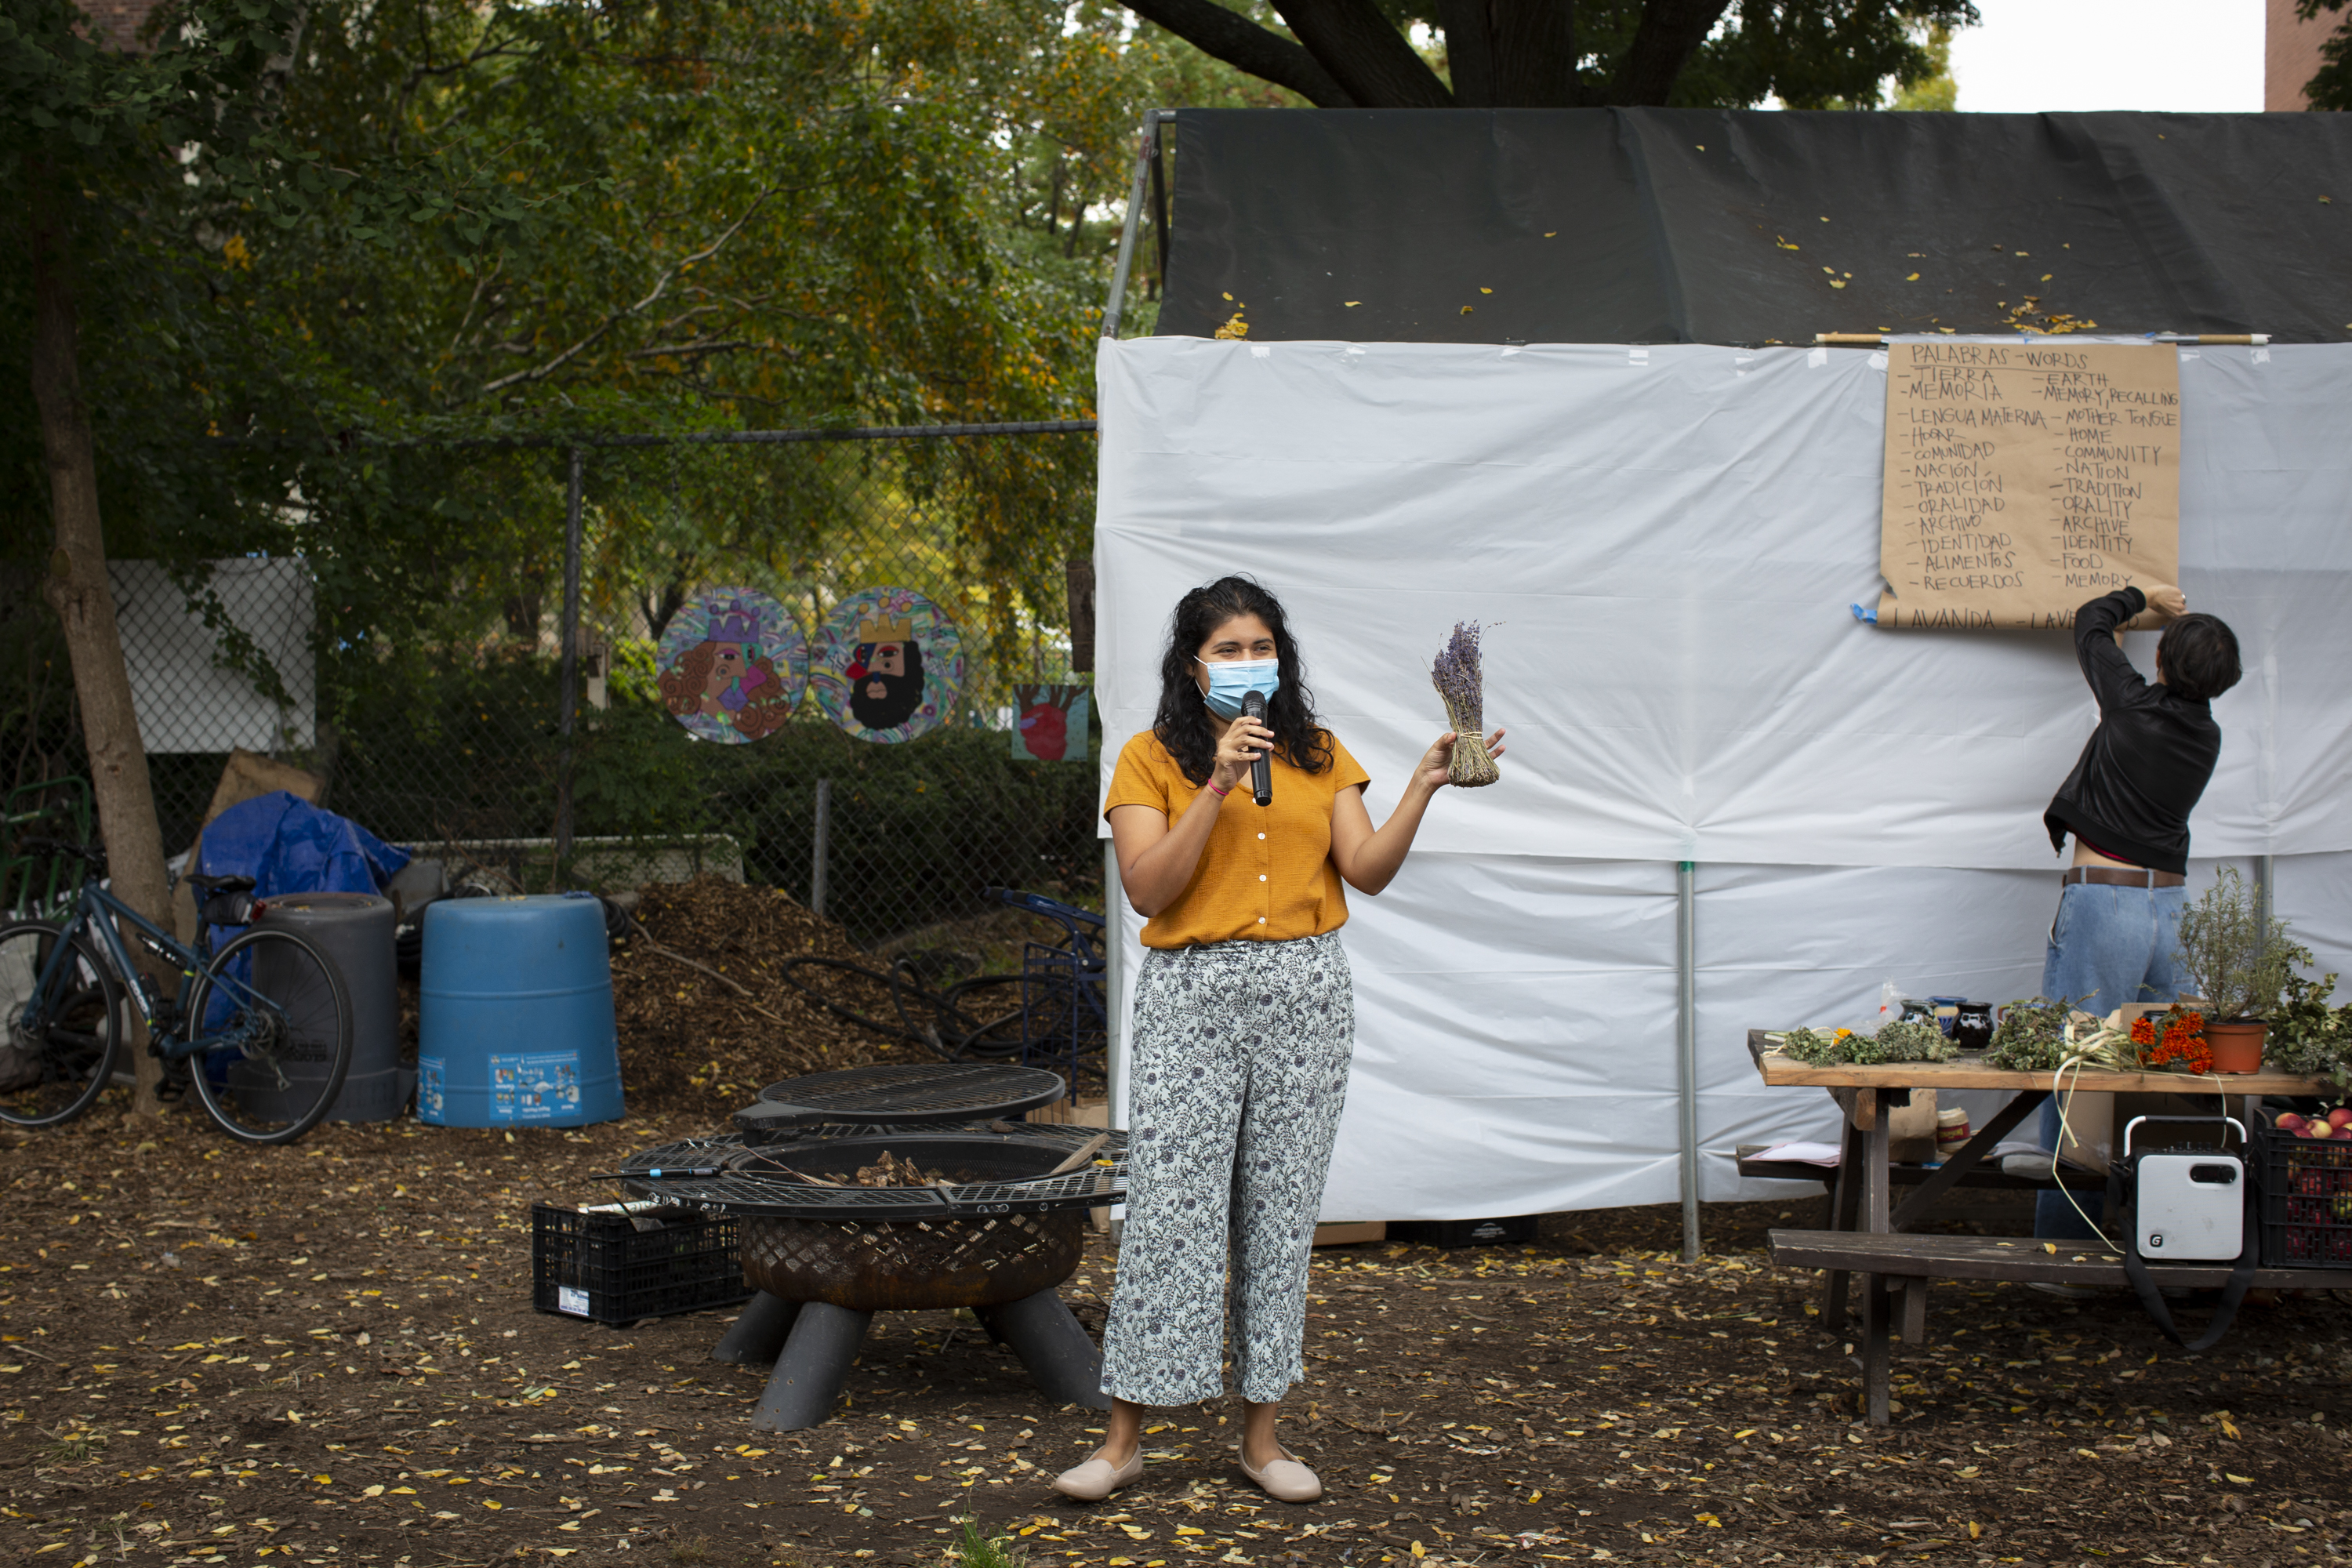 Carolina, wearing an orange shirt, patterned pants, and a medical mask, teaches the properties of lavender. She holds the branch of lavender on her left hand. She wears a medical mask. She stands between the fire pit and the table showcasing the different plants participants will learn about during the workshop. On the bench there is a crate with apples and a speaker. In the back, Angeles, wearing a black jacket and jeans, tries to fix the paper kraft board that shows a list of words in English and Spanish that Carolina will use as part of the activity. Photo by Cinthya Santos-Briones for Brewing Memories workshop, October 24, 2020.